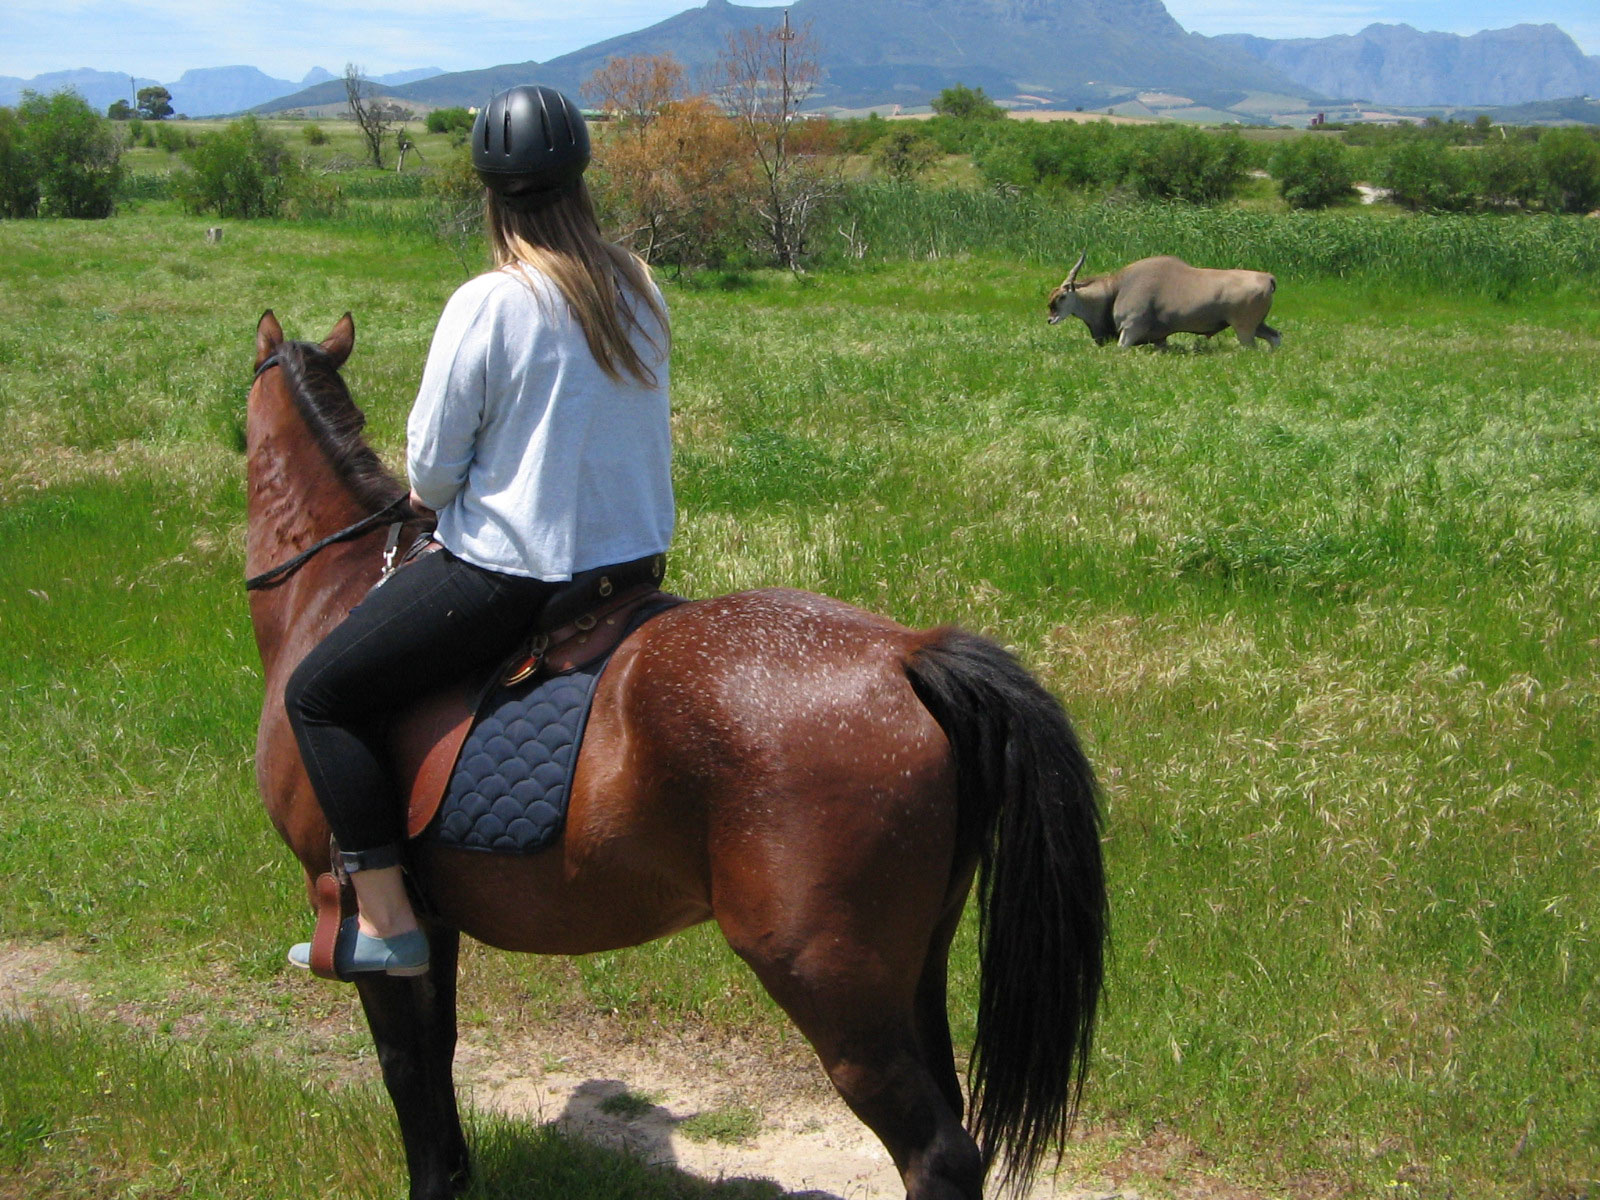 Horse riding keeps kids active.